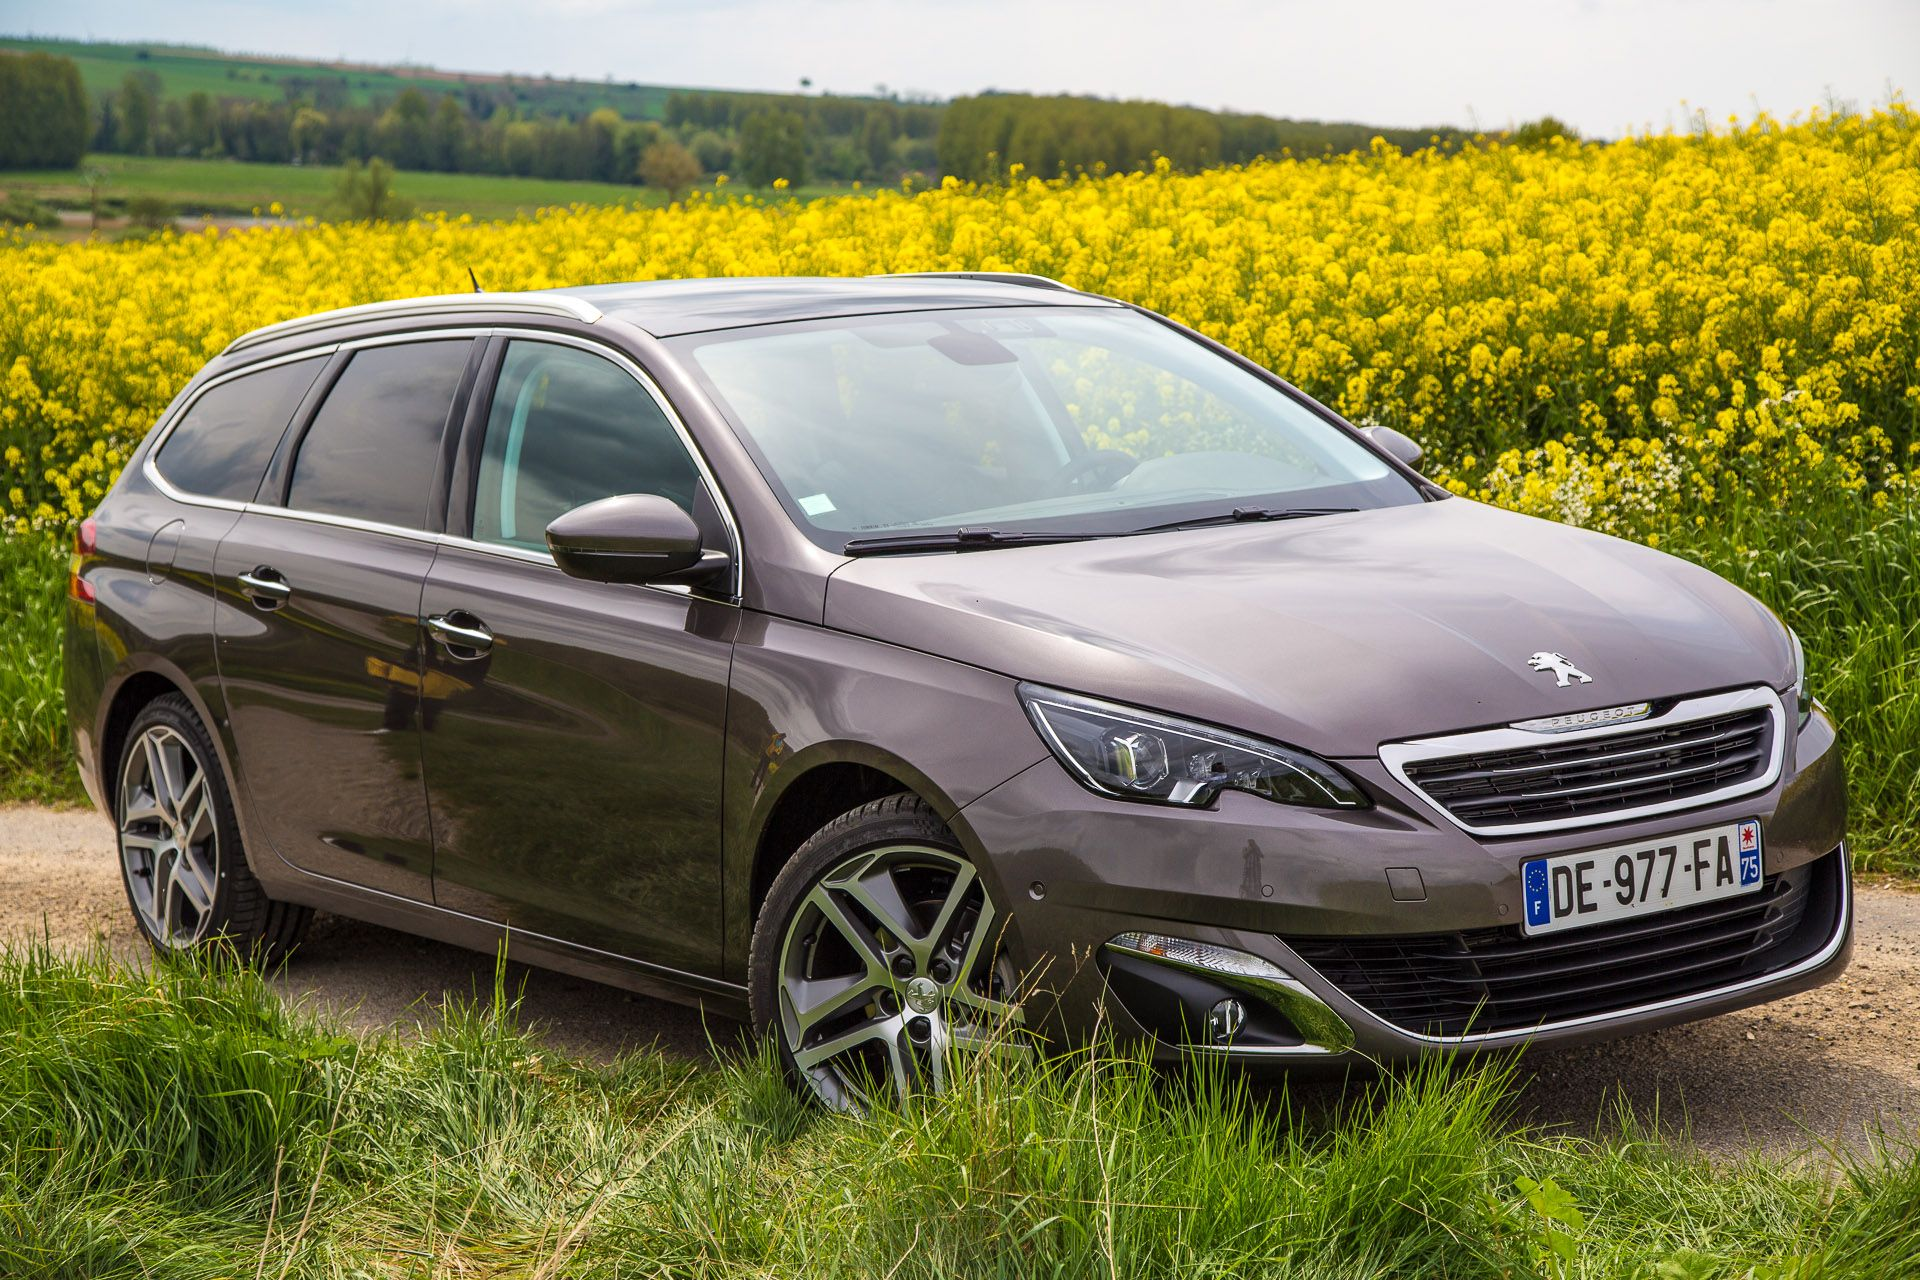 2008 peugeot 308 sw 2 0 hdi related infomation specifications weili automotive network. Black Bedroom Furniture Sets. Home Design Ideas